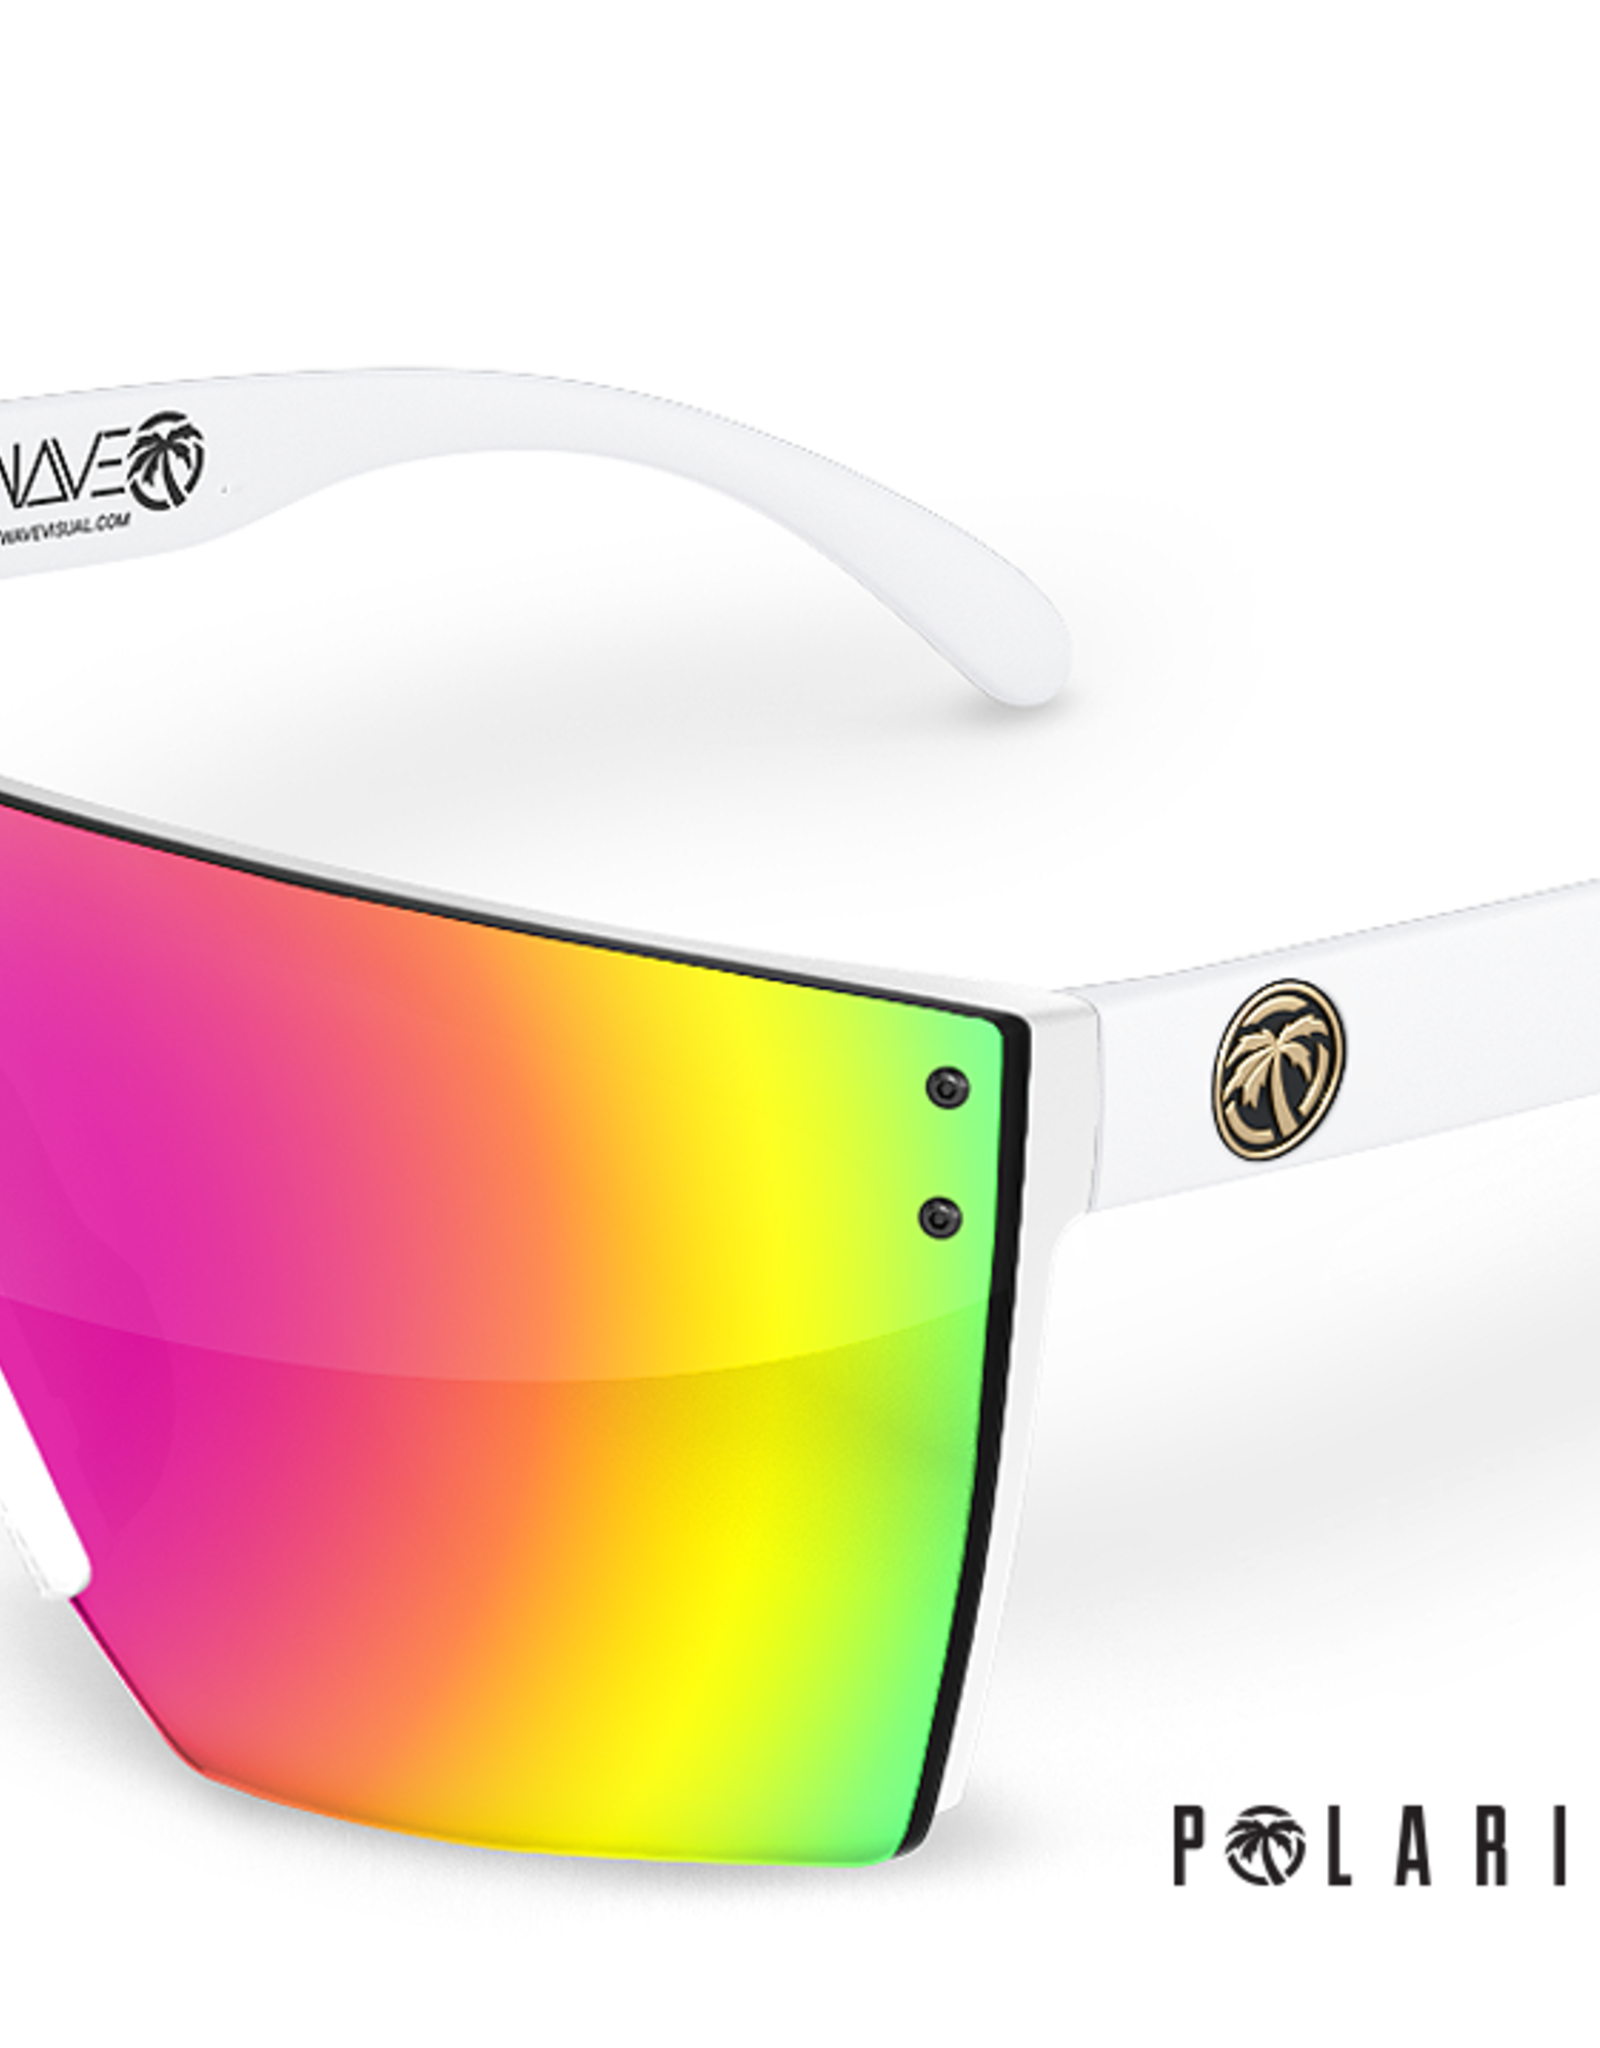 Heatwave Visual Heatwave - LAZER FACE (Z87) - POLAR Savage Spectrum (White Frame)